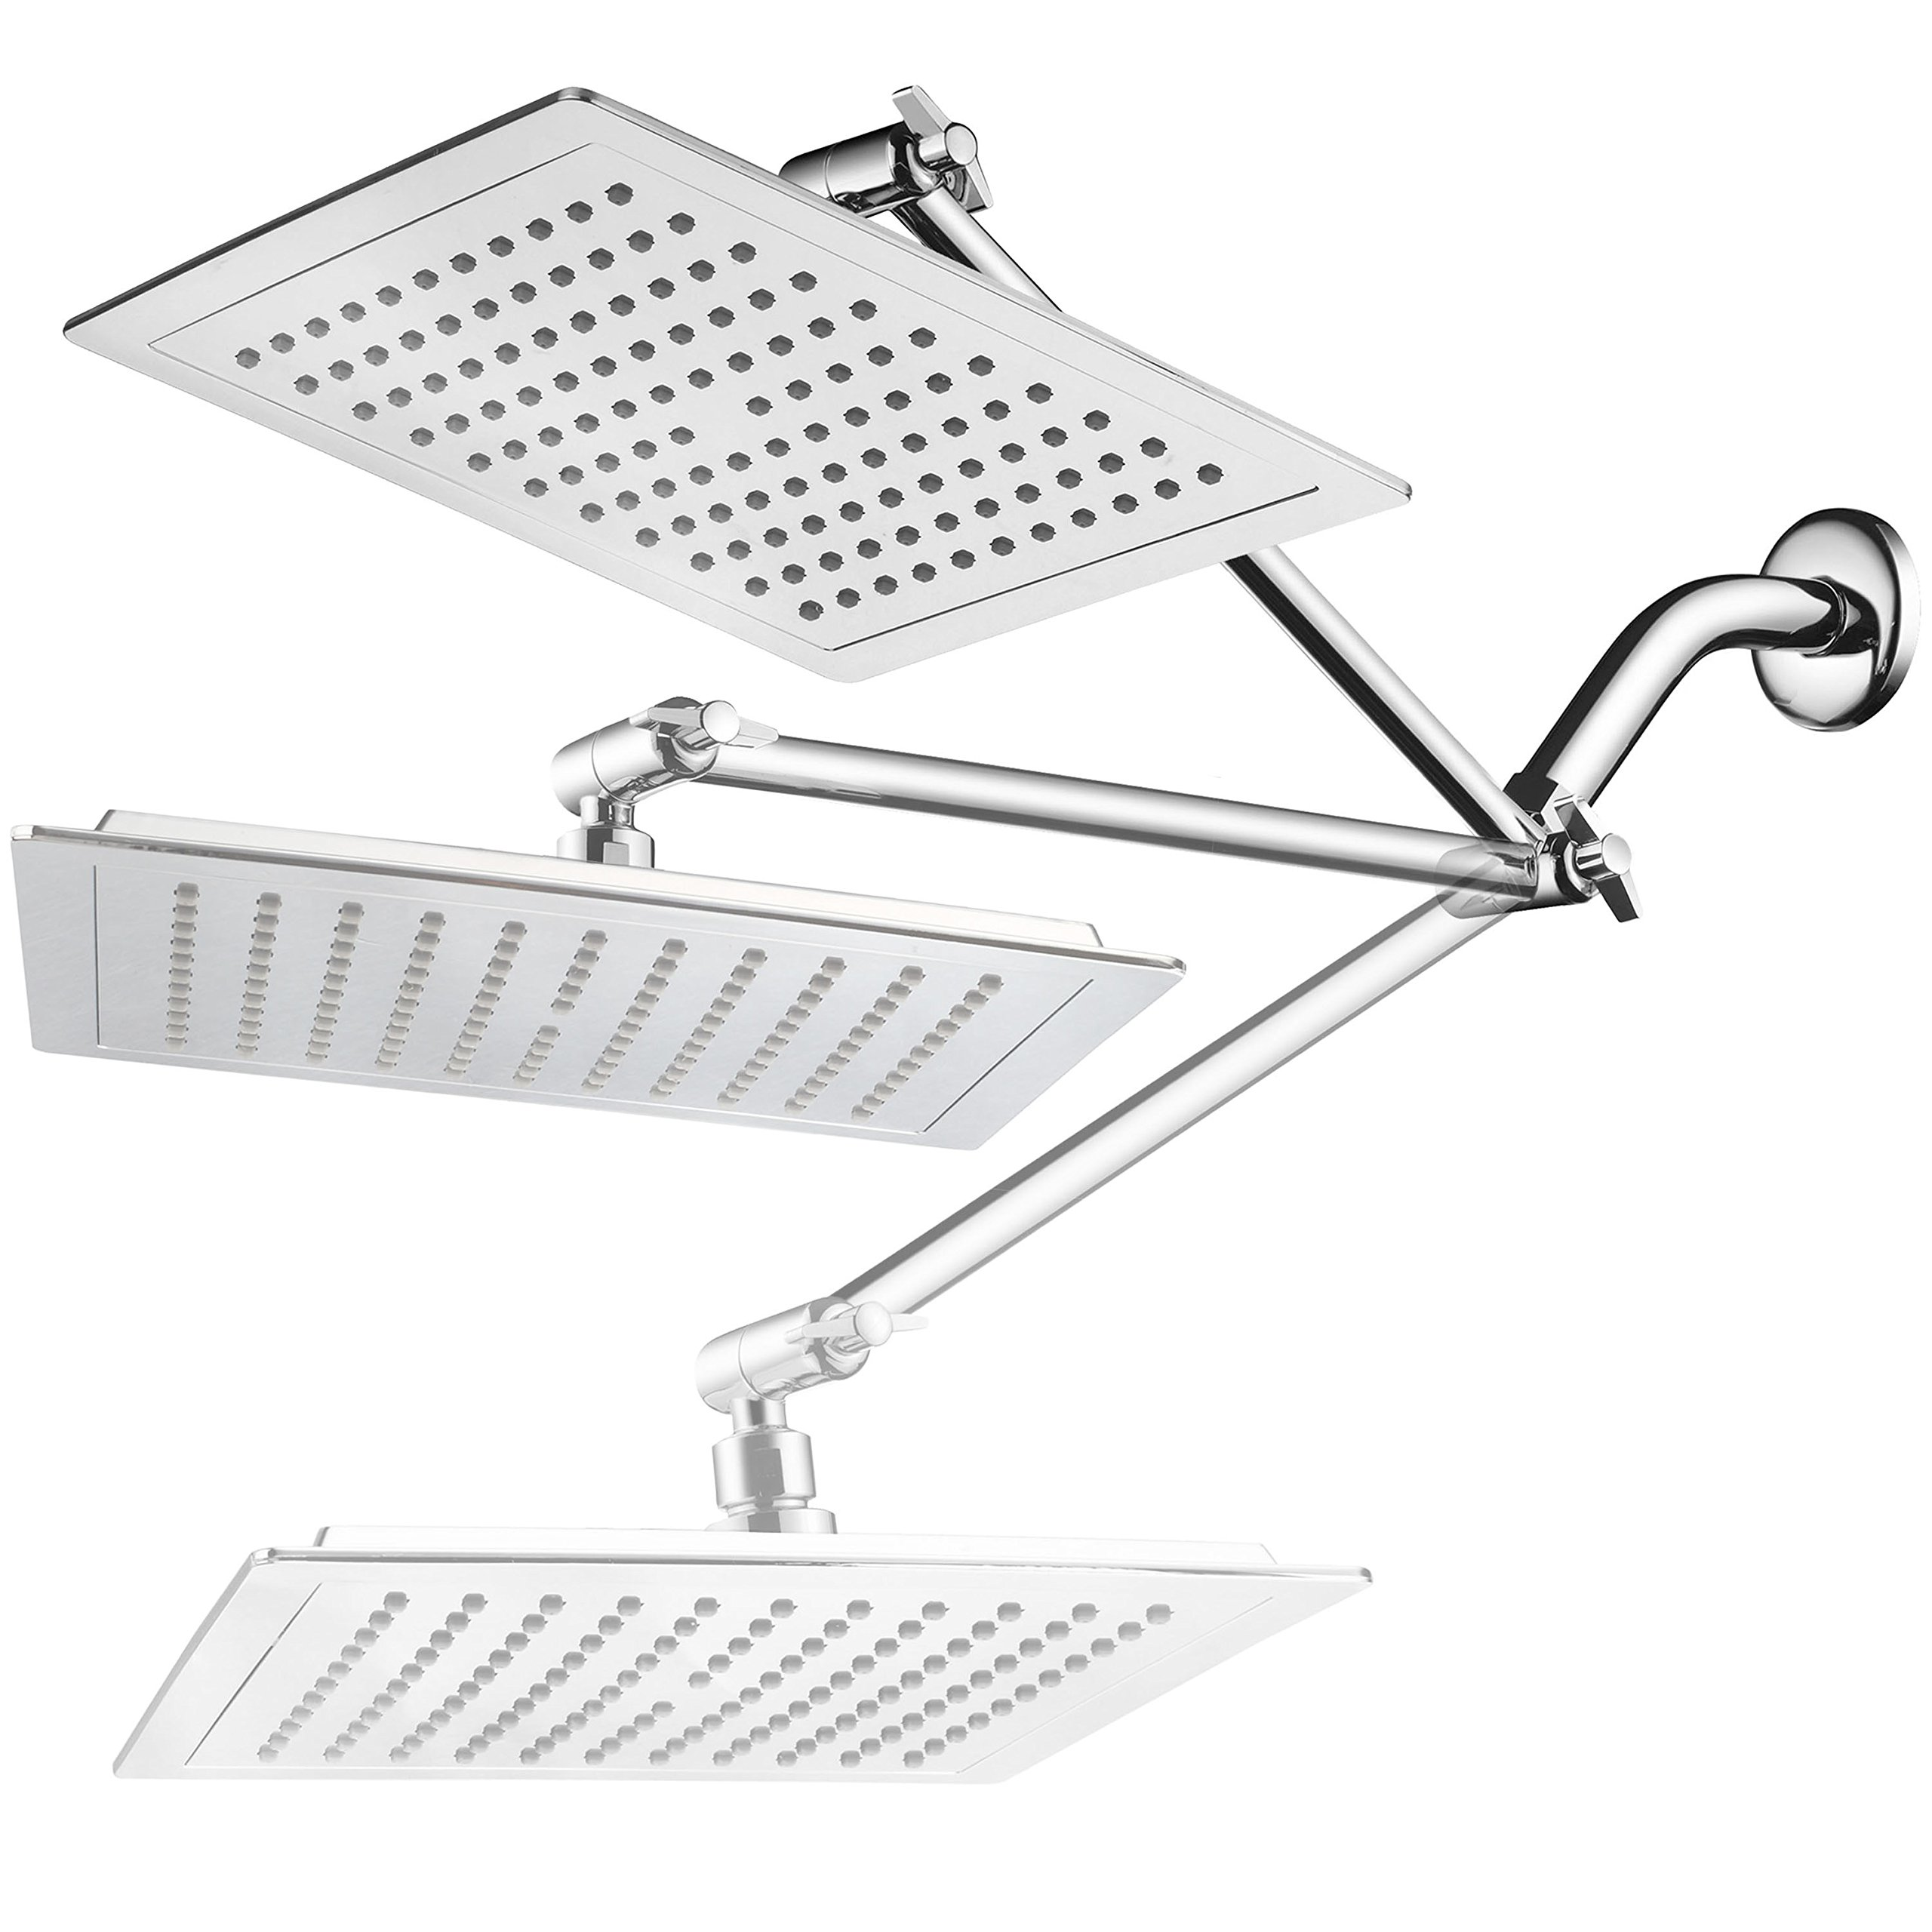 AquaSpa Giant 9-inch Diagonal Square Rain Shower Head PLUS 11-inch Solid Brass Angle Adjustable Extension Arm. 121 Jets with Rub-Clean Nozzles. Front and Back All-Chrome Finish. Sleek Square Design